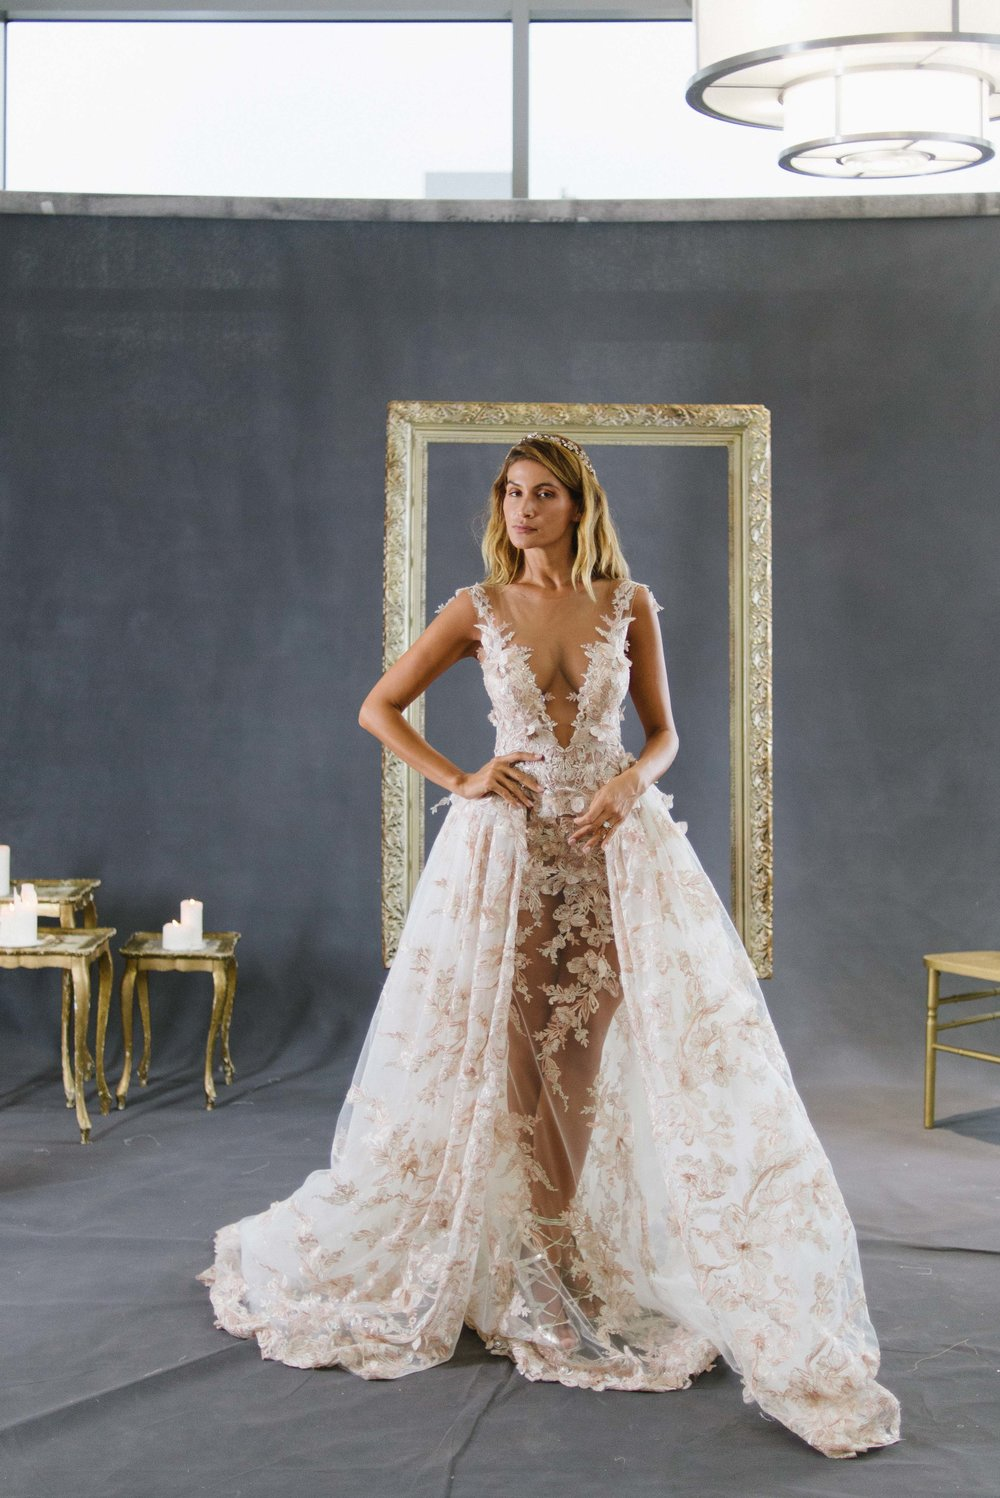 New York Bridal Fashion Week 2016 | Galia Lahav Couture Collection | Available at Little White Dress Bridal Shop in Denver